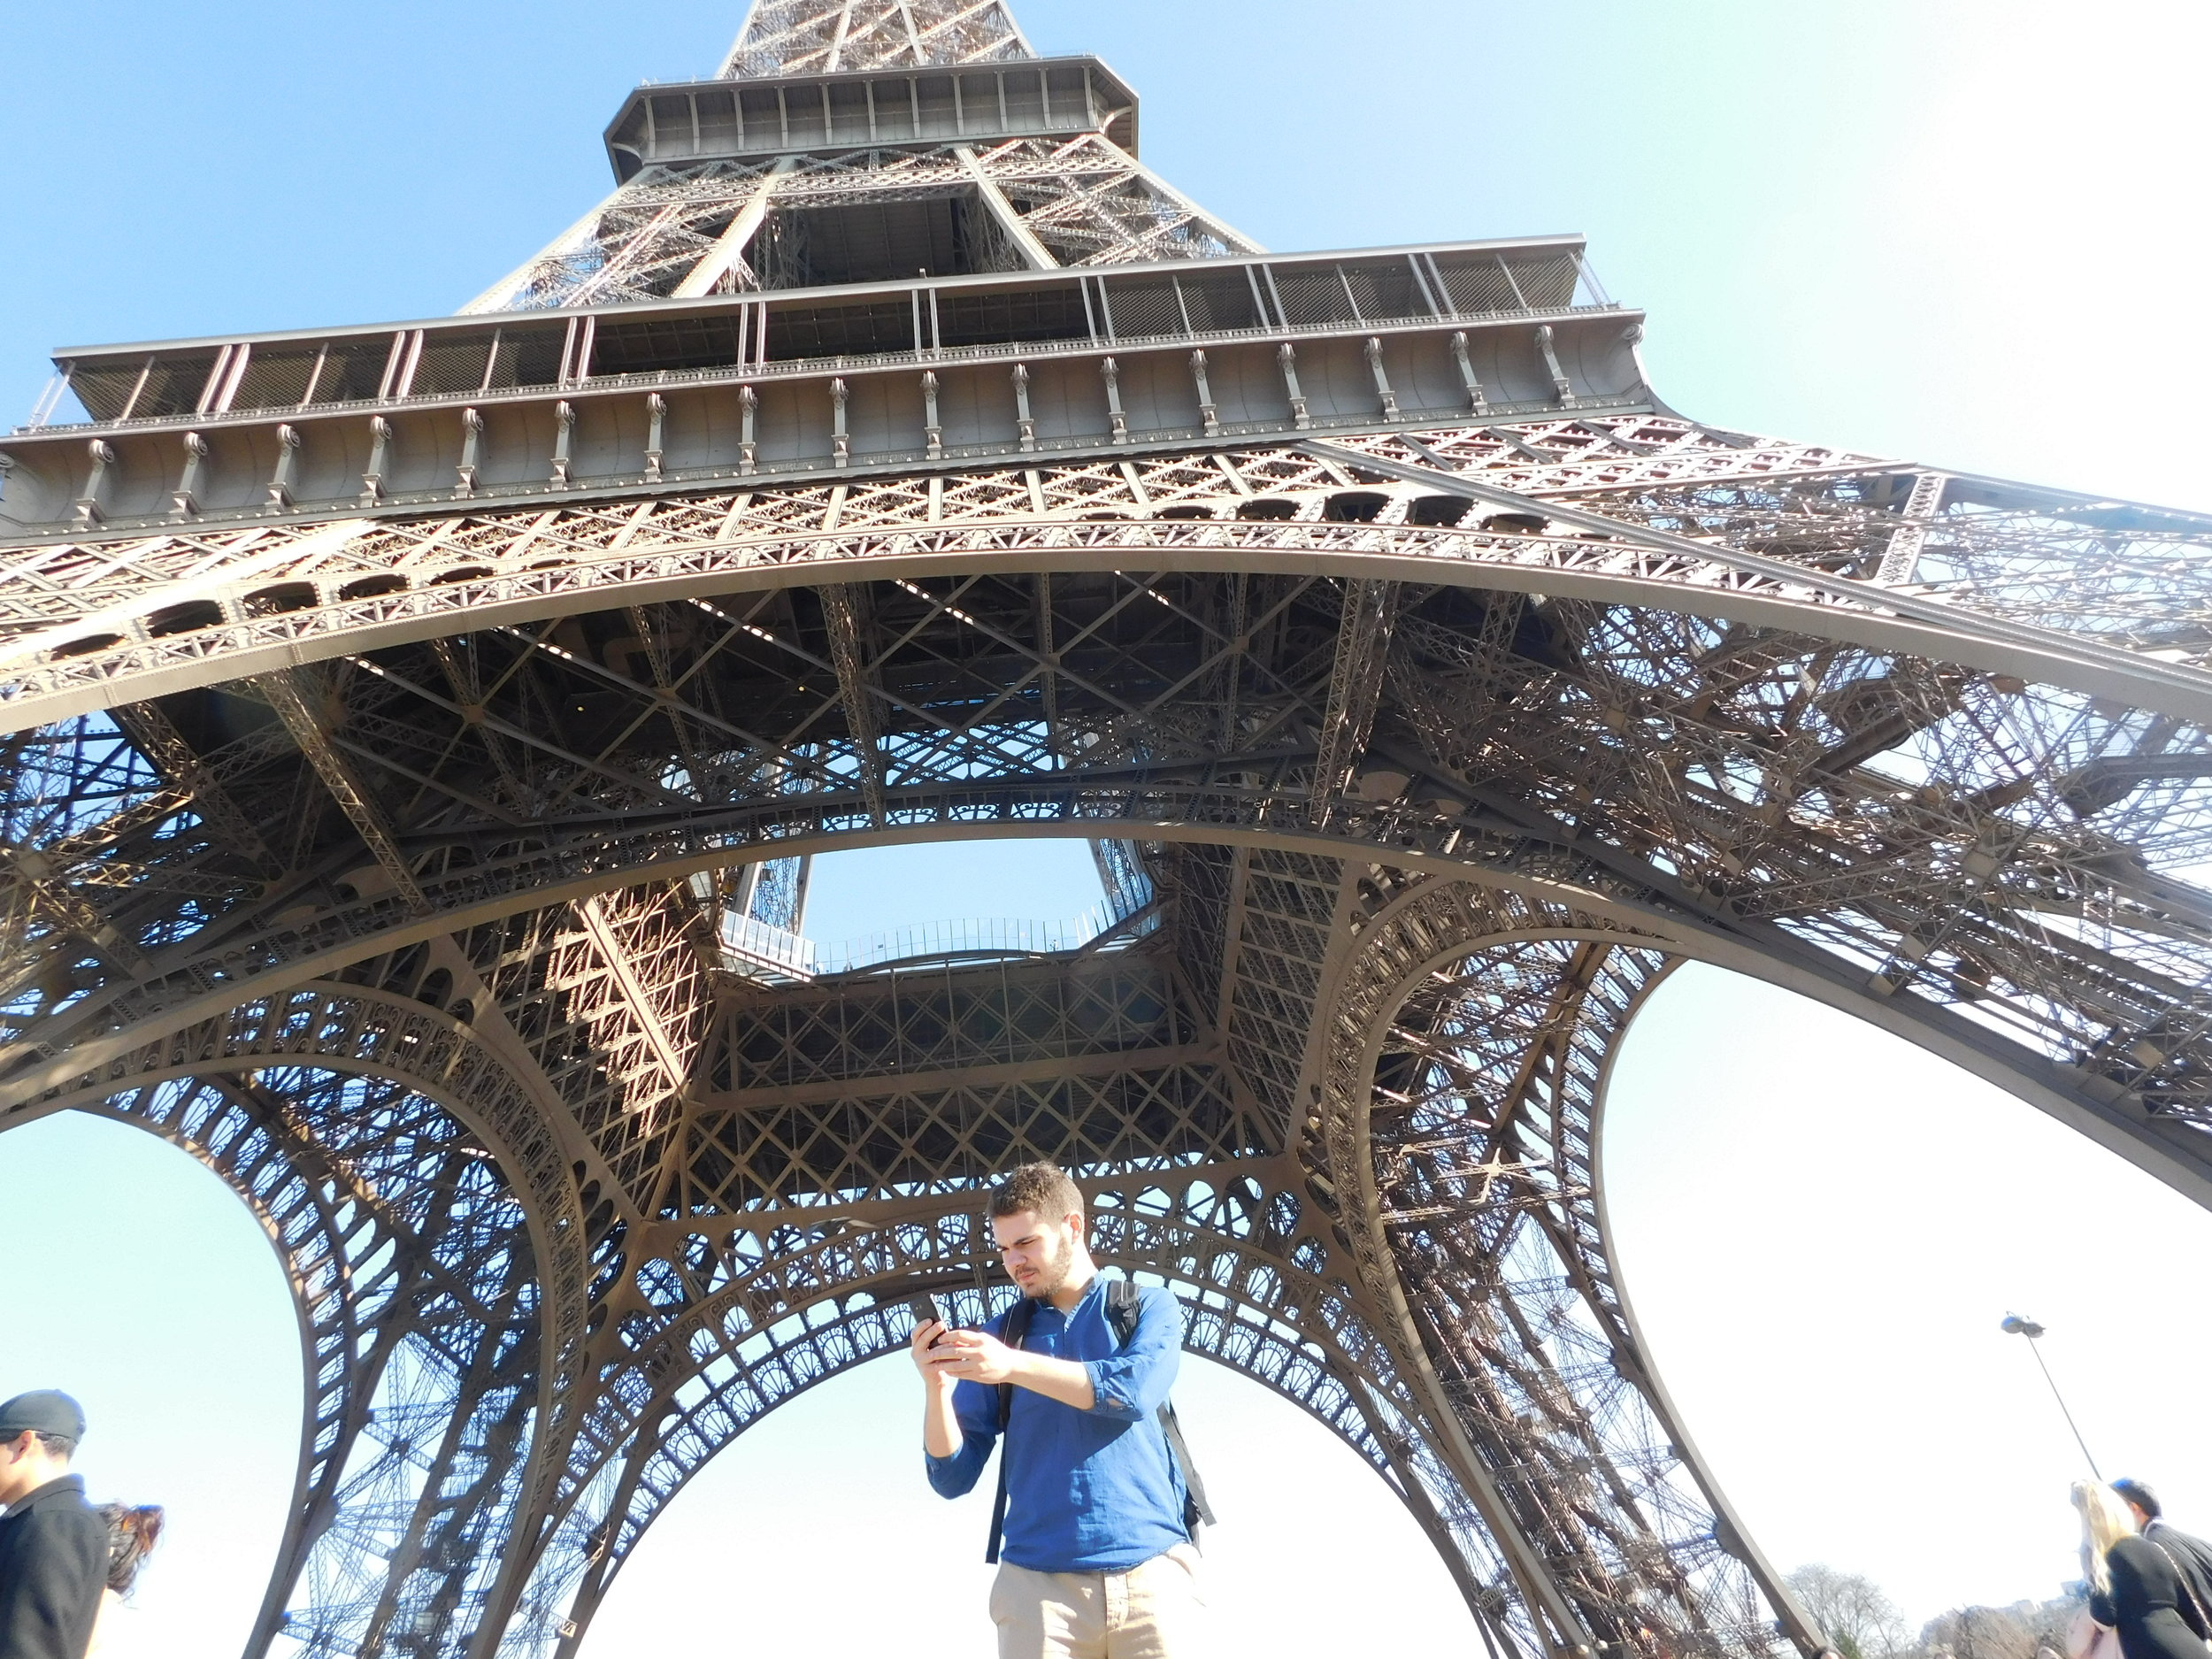 """Eli struggling to find cell service """"under the biggest cell phone tower in Paris"""""""